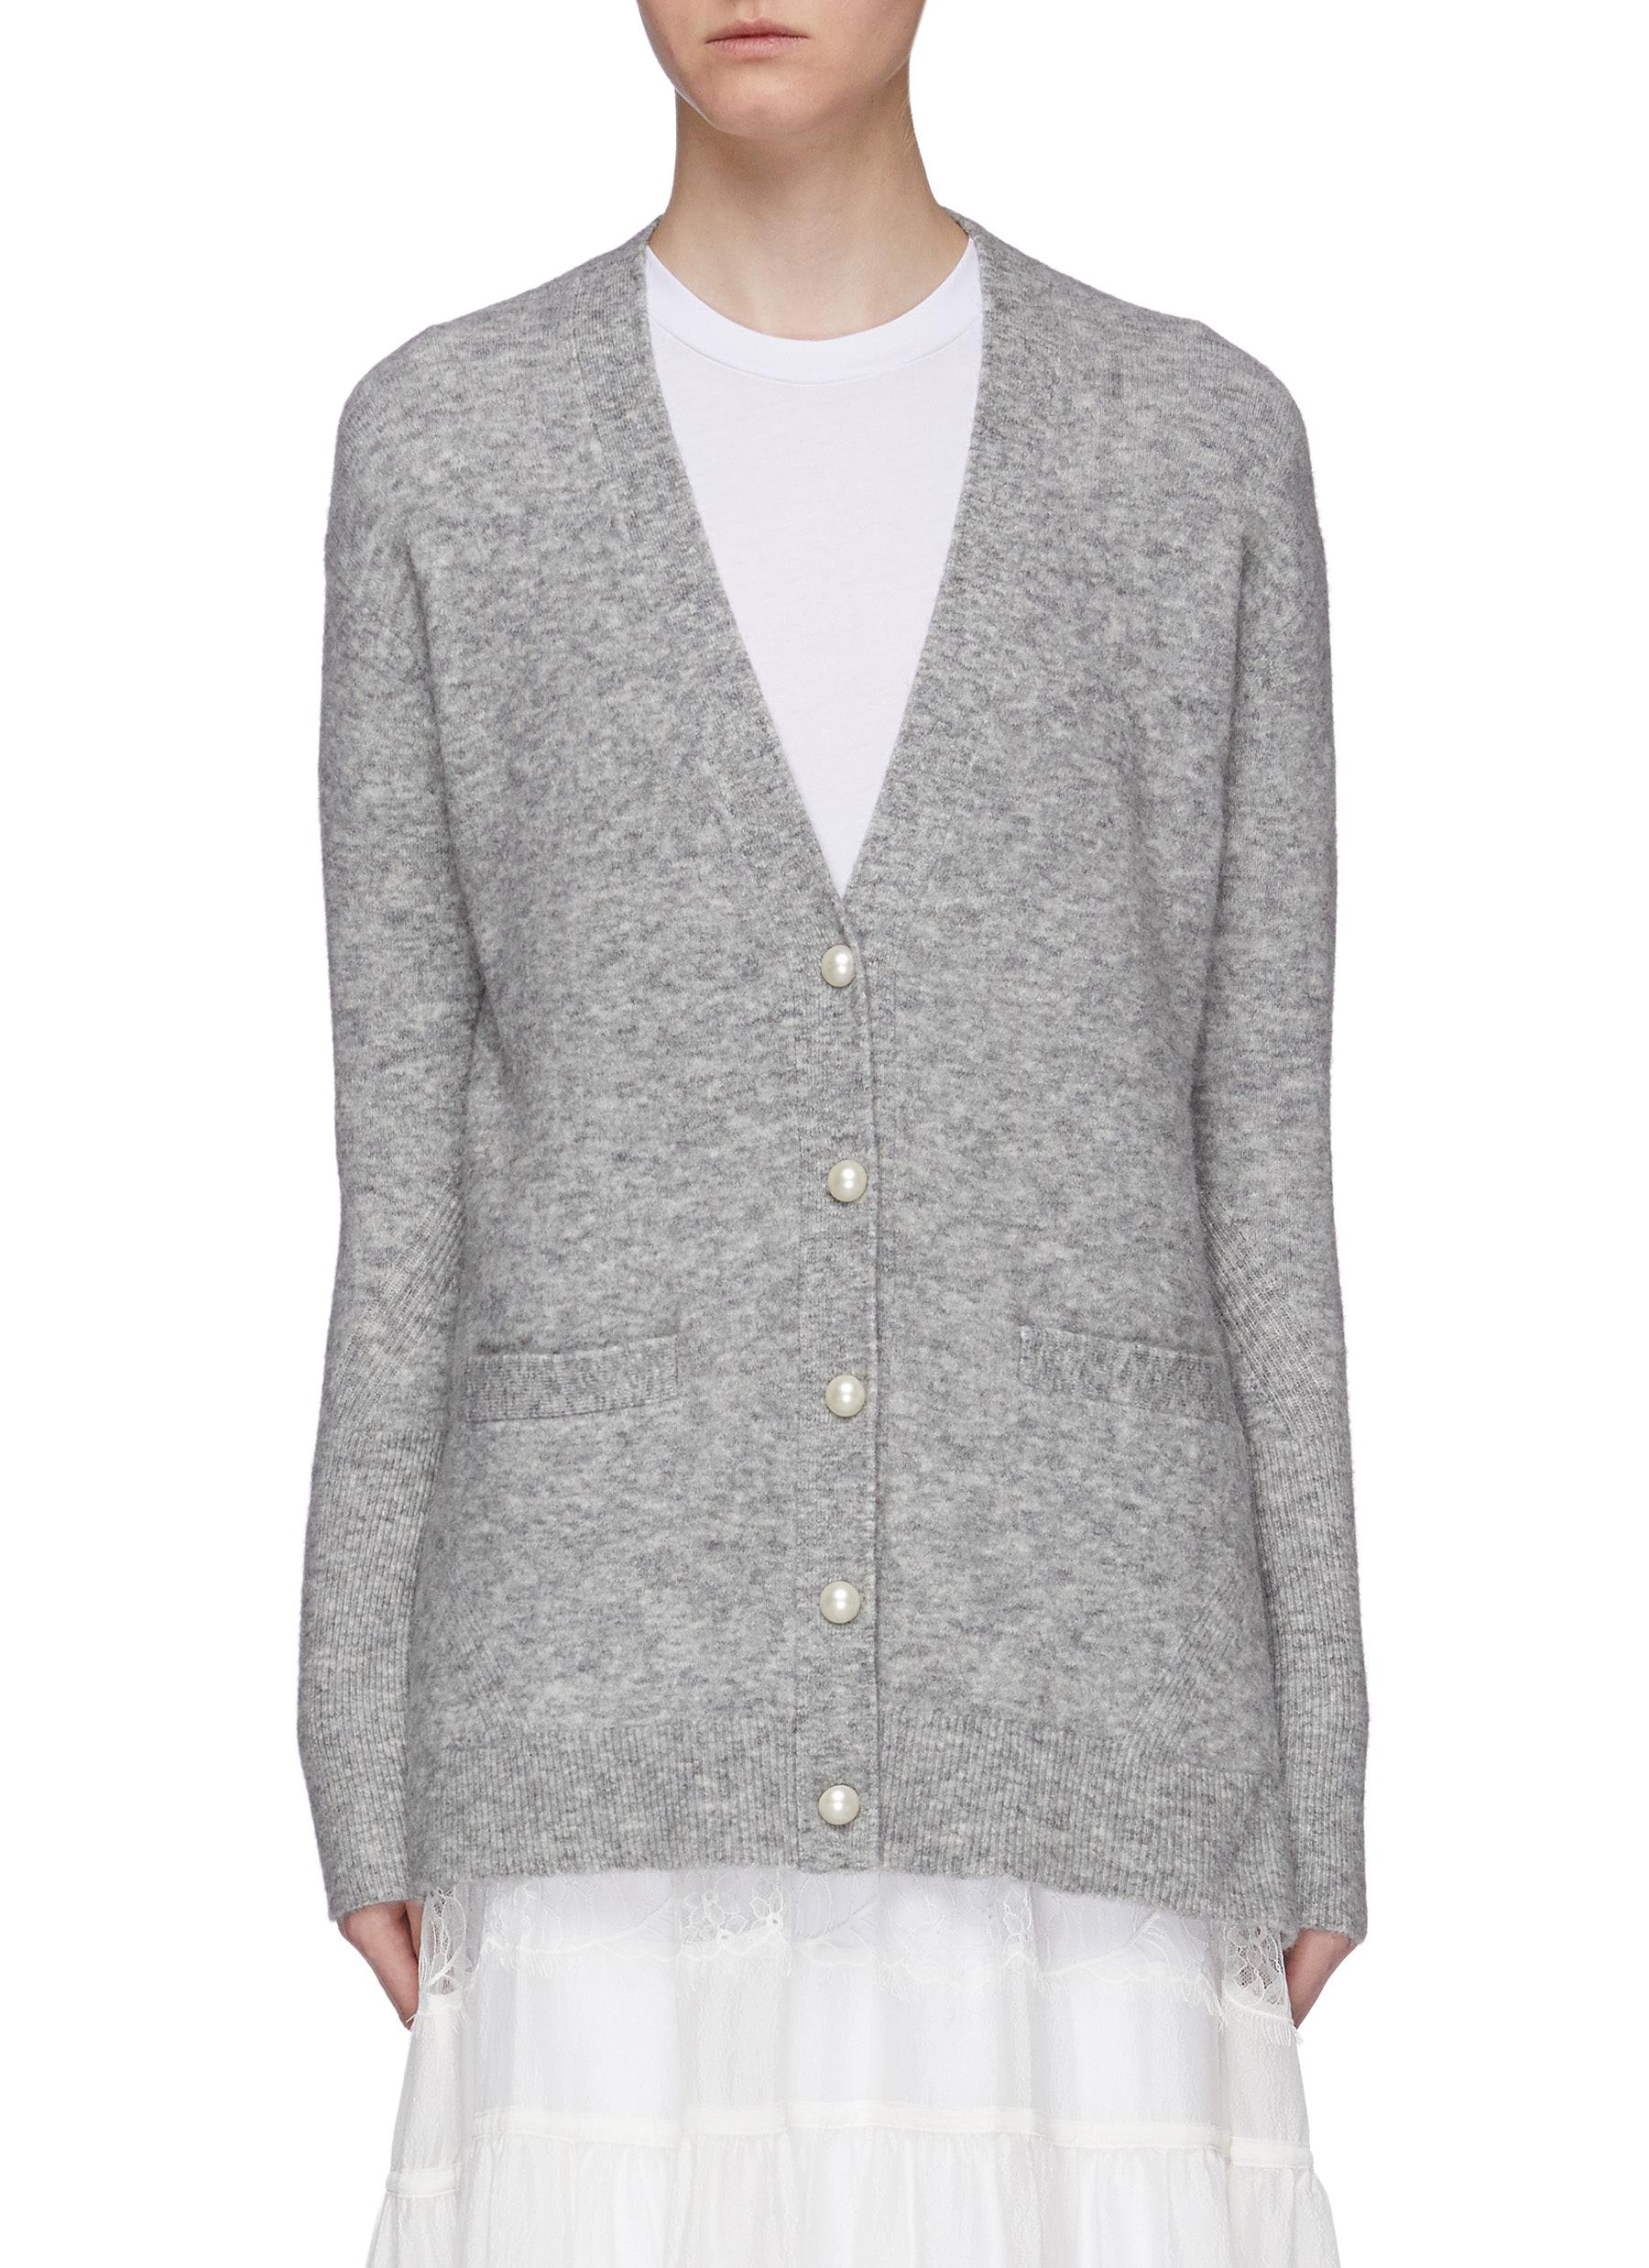 Faux pearl button cardigan by 3.1 Phillip Lim